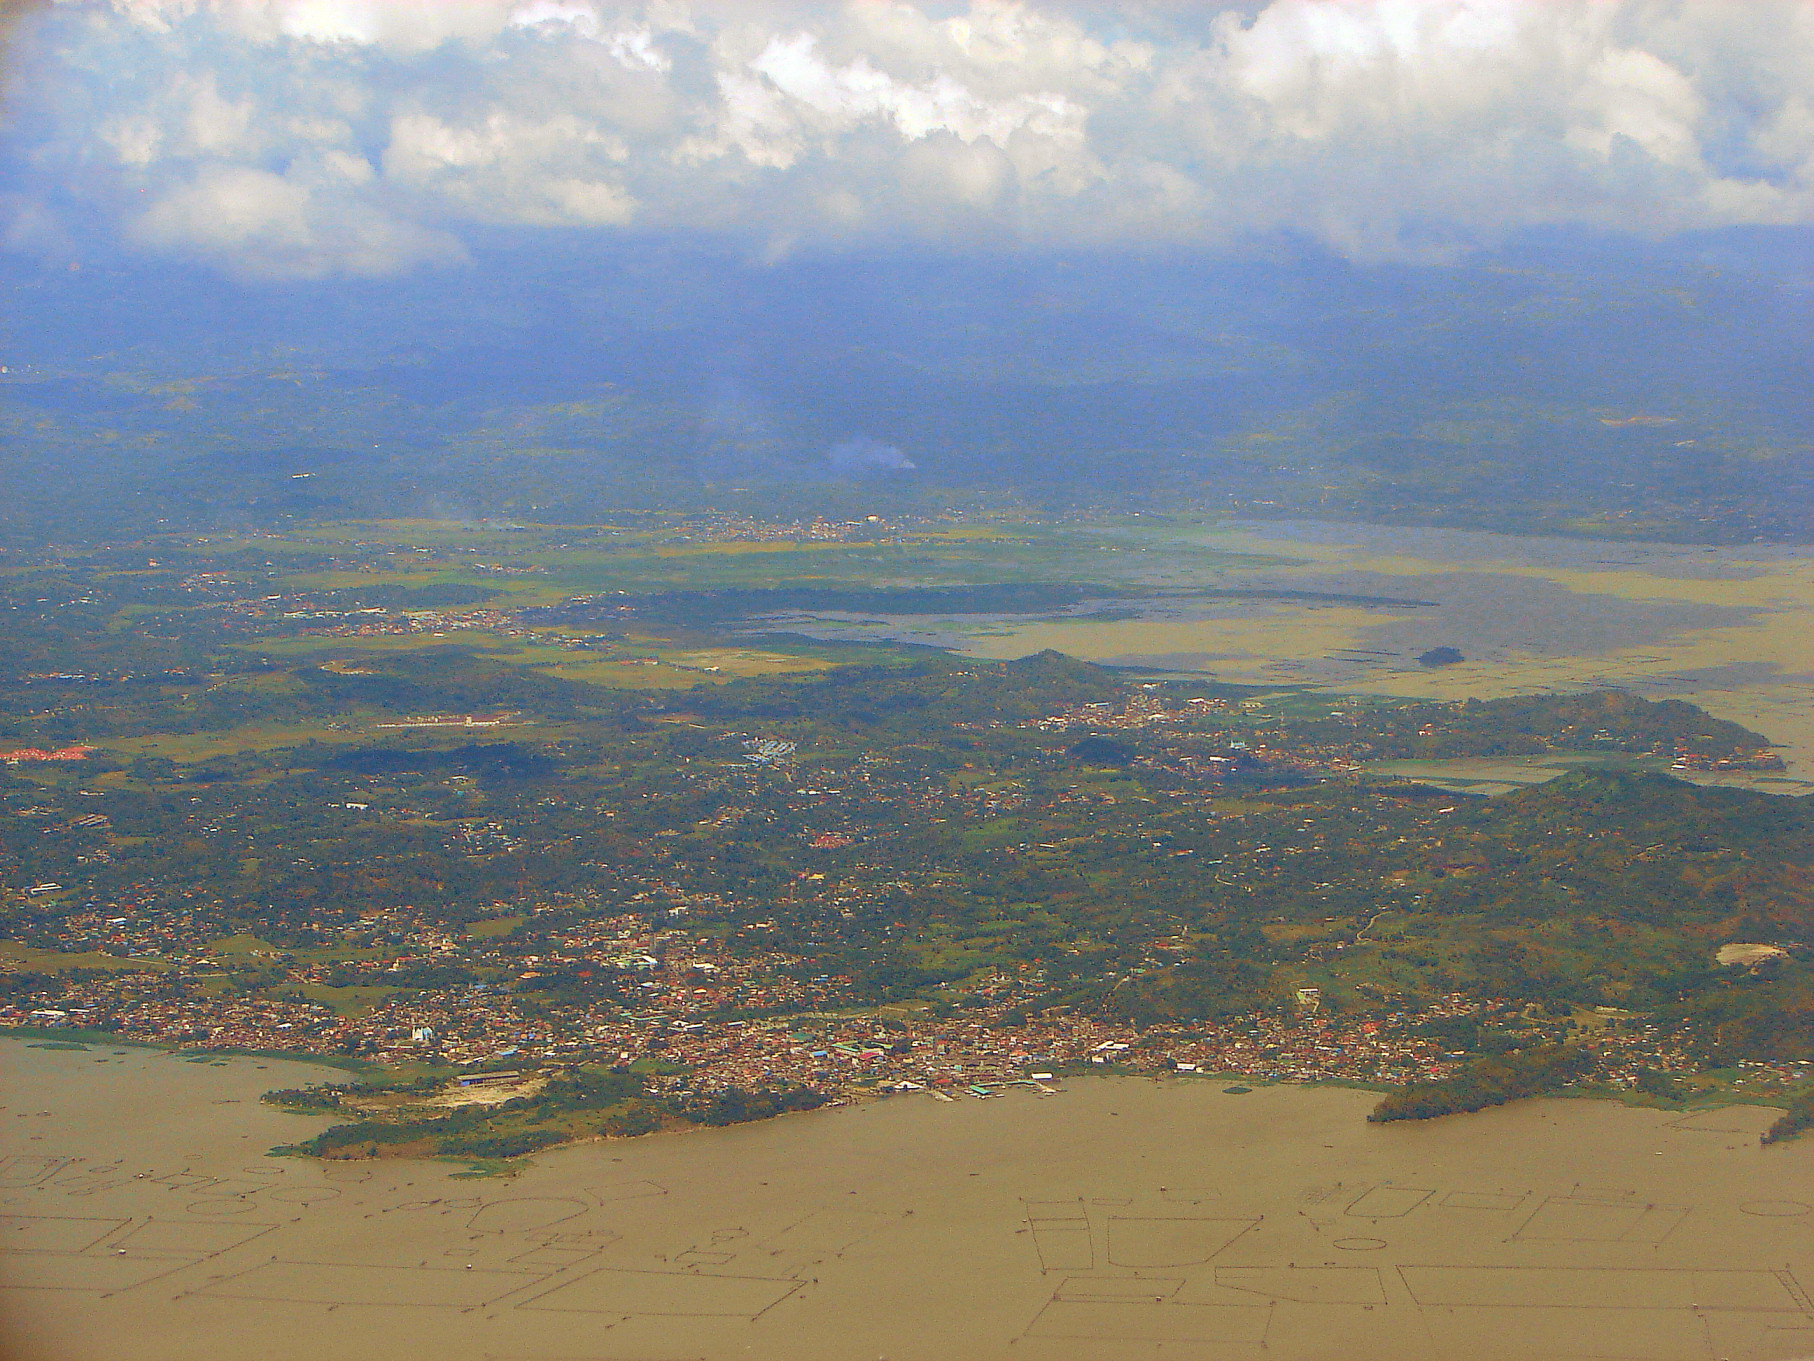 Binangonan Philippines Pictures And Videos And News